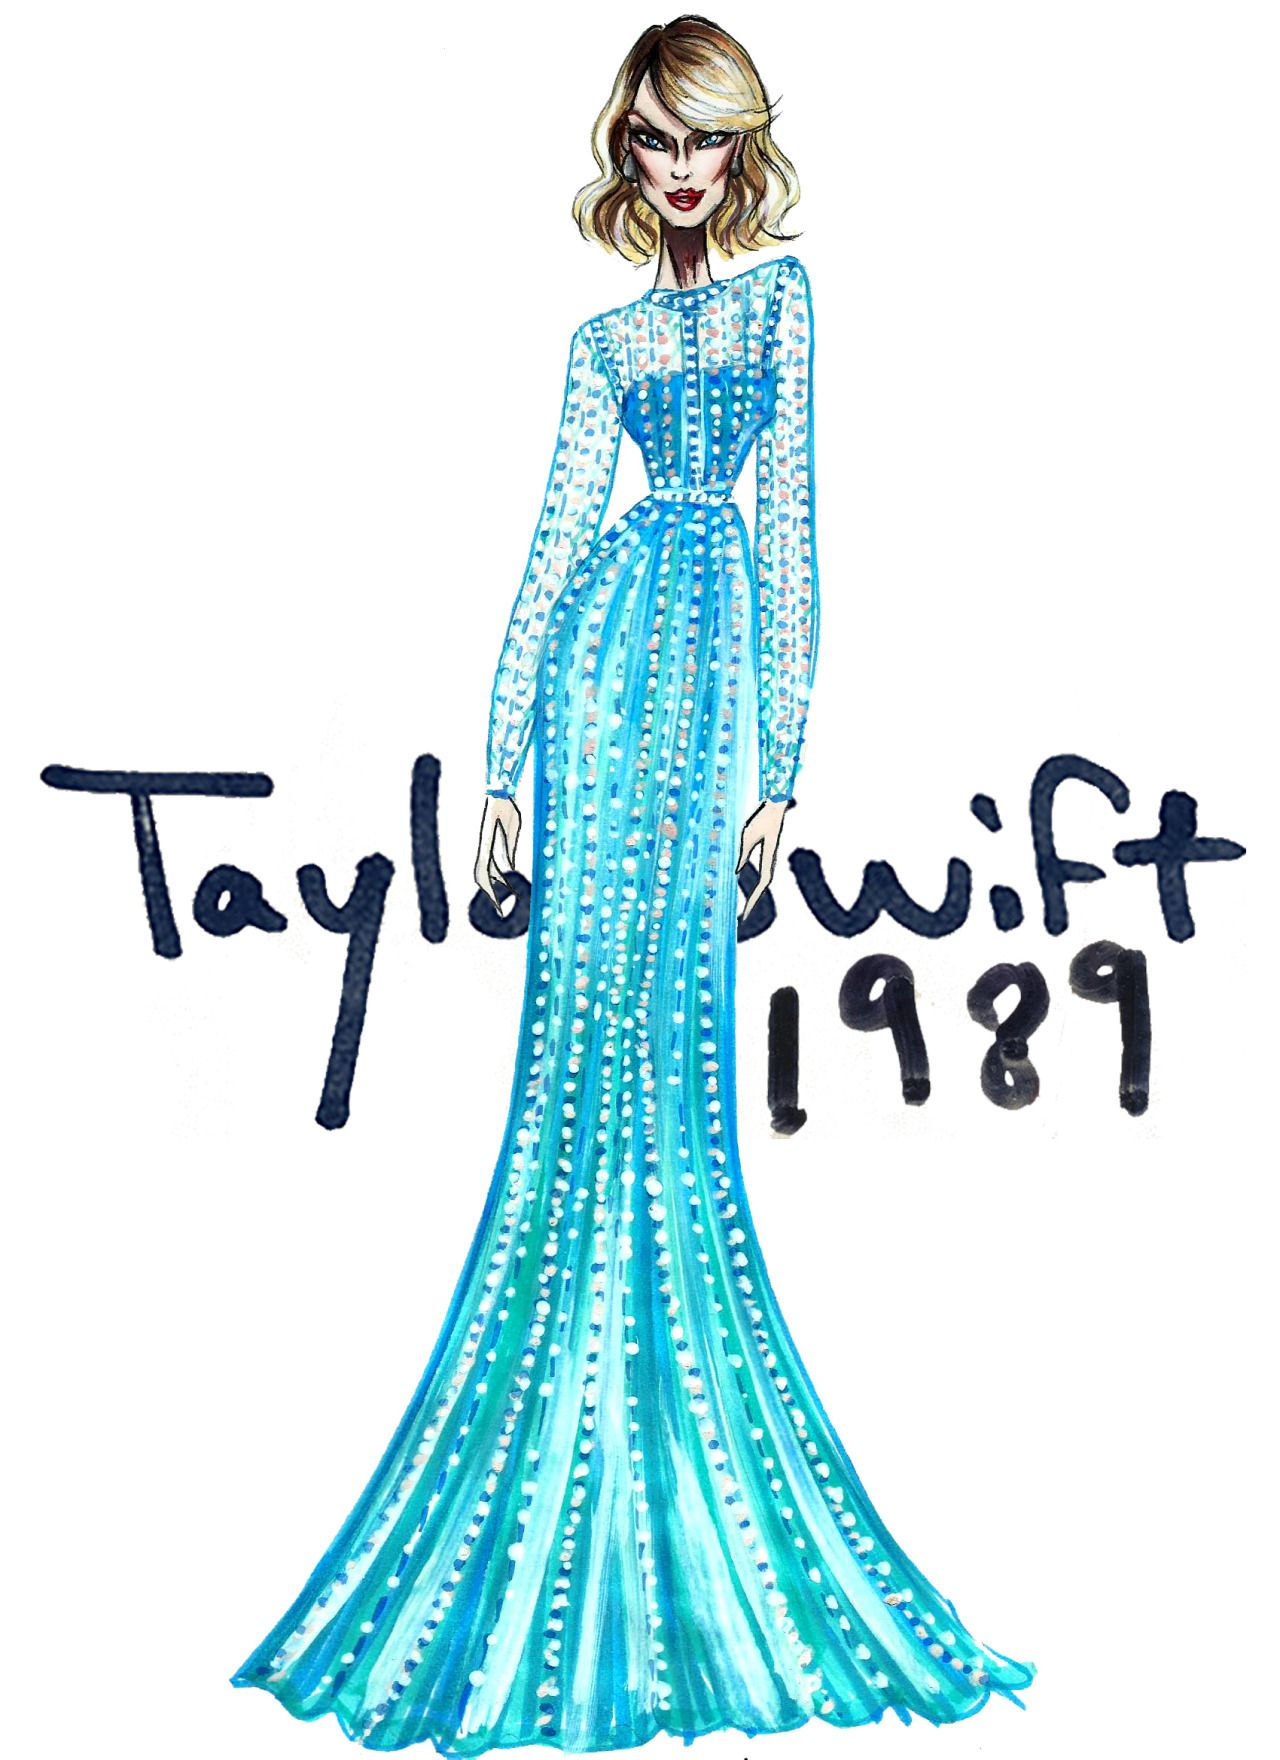 taylor swift 1989 blank space outfit sketch taylor